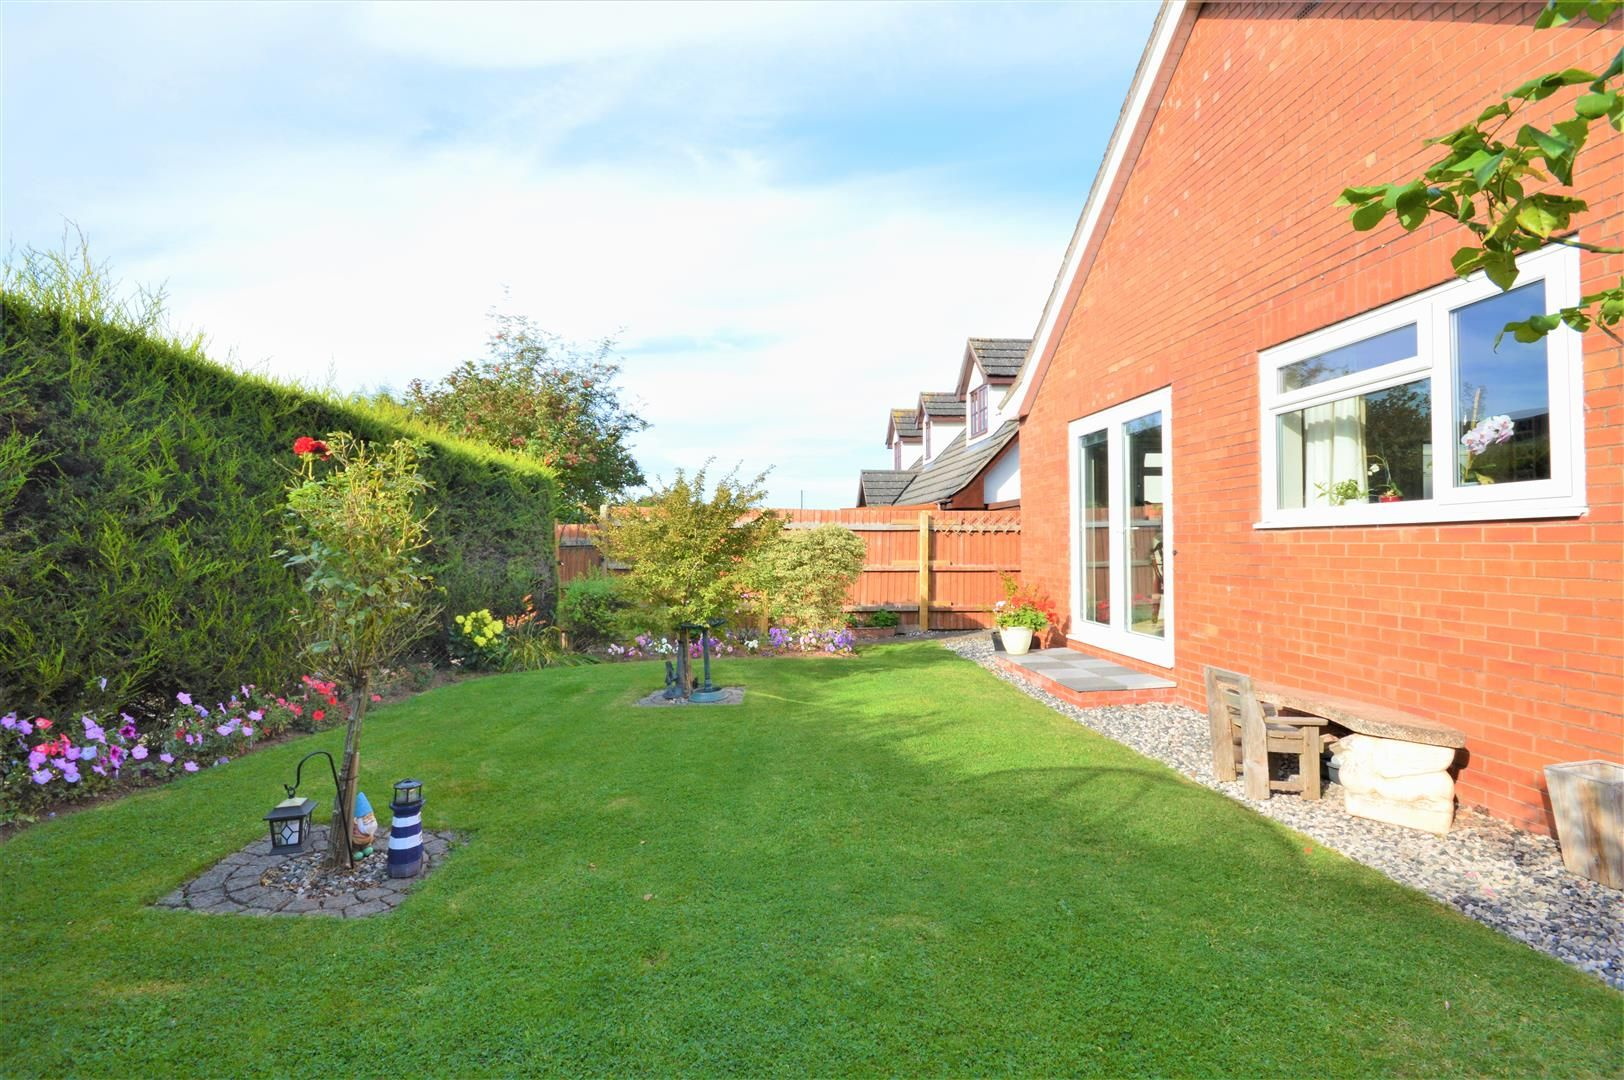 4 bed detached-bungalow for sale in Marden 12